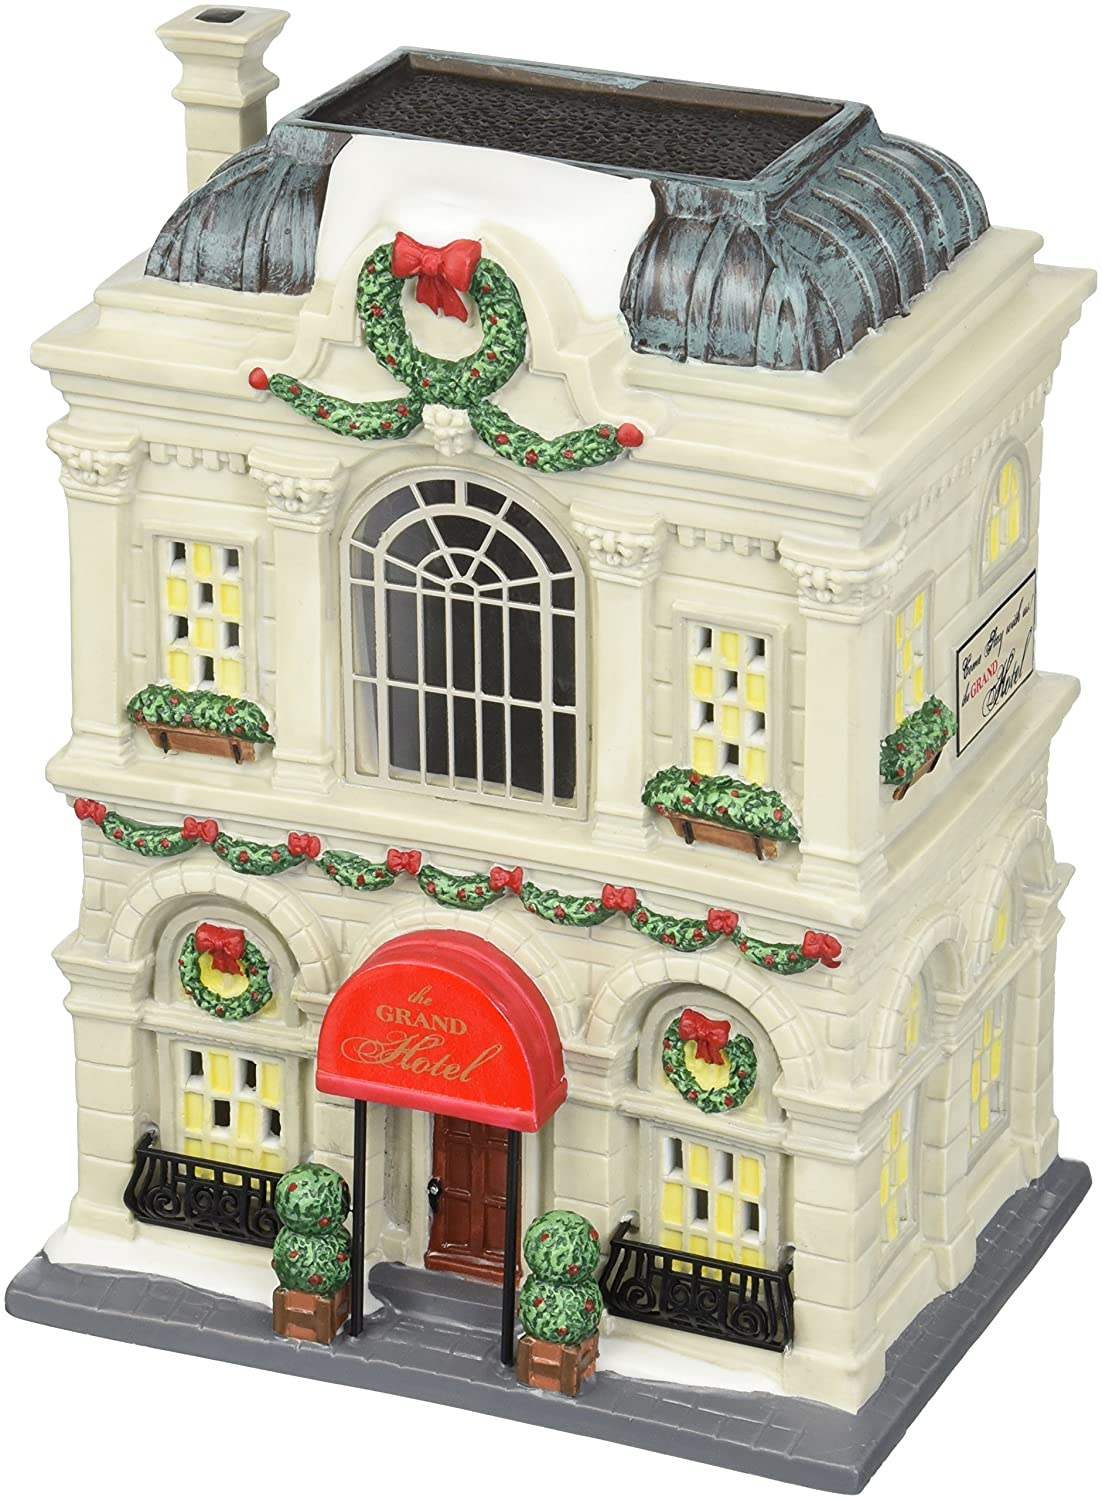 Amazon.com: Department 56 Christmas in the City Village Grand Hotel ...